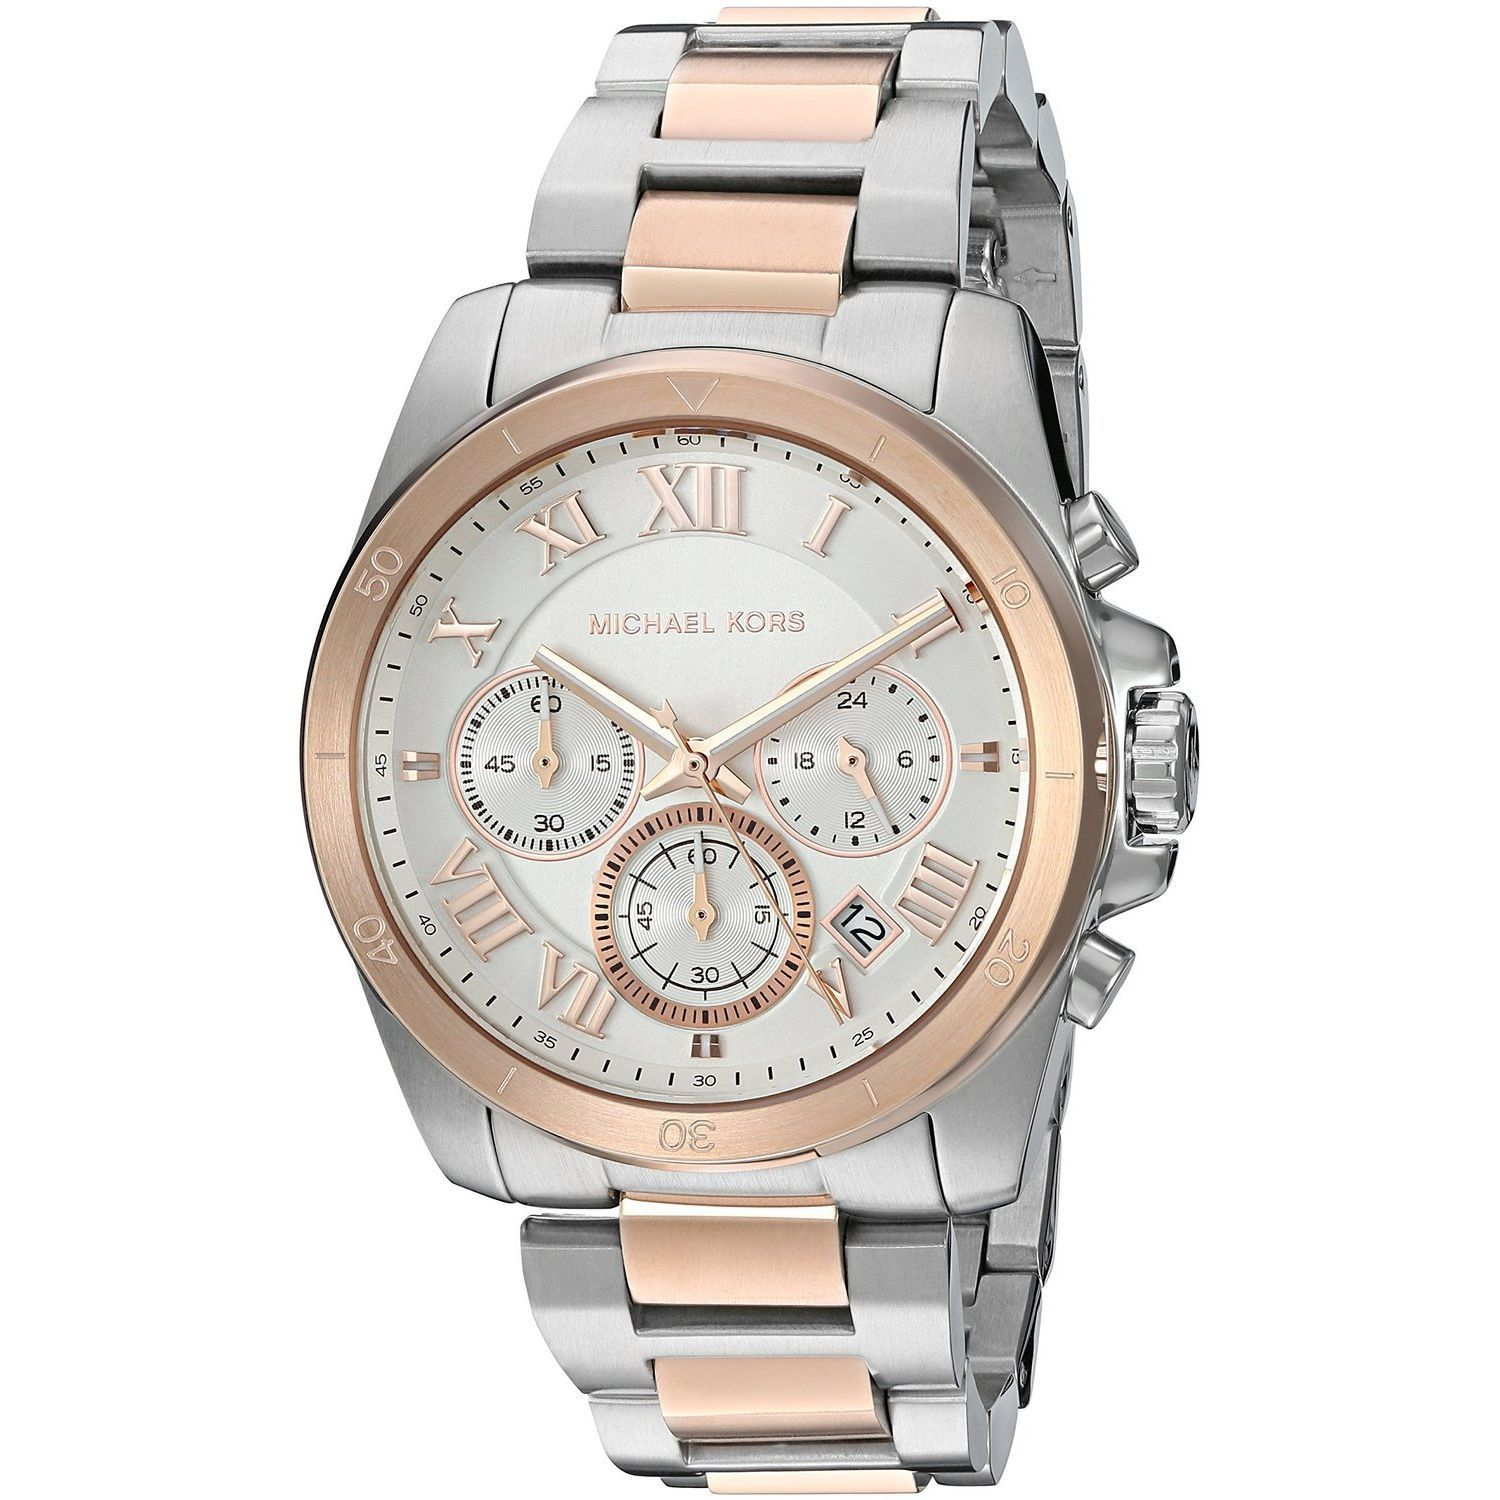 a1251a317968 Shop Michael Kors Women s MK6368  Brecken  Chronograph Two-Tone Stainless  Steel Watch - Free Shipping Today - Overstock - 11904196